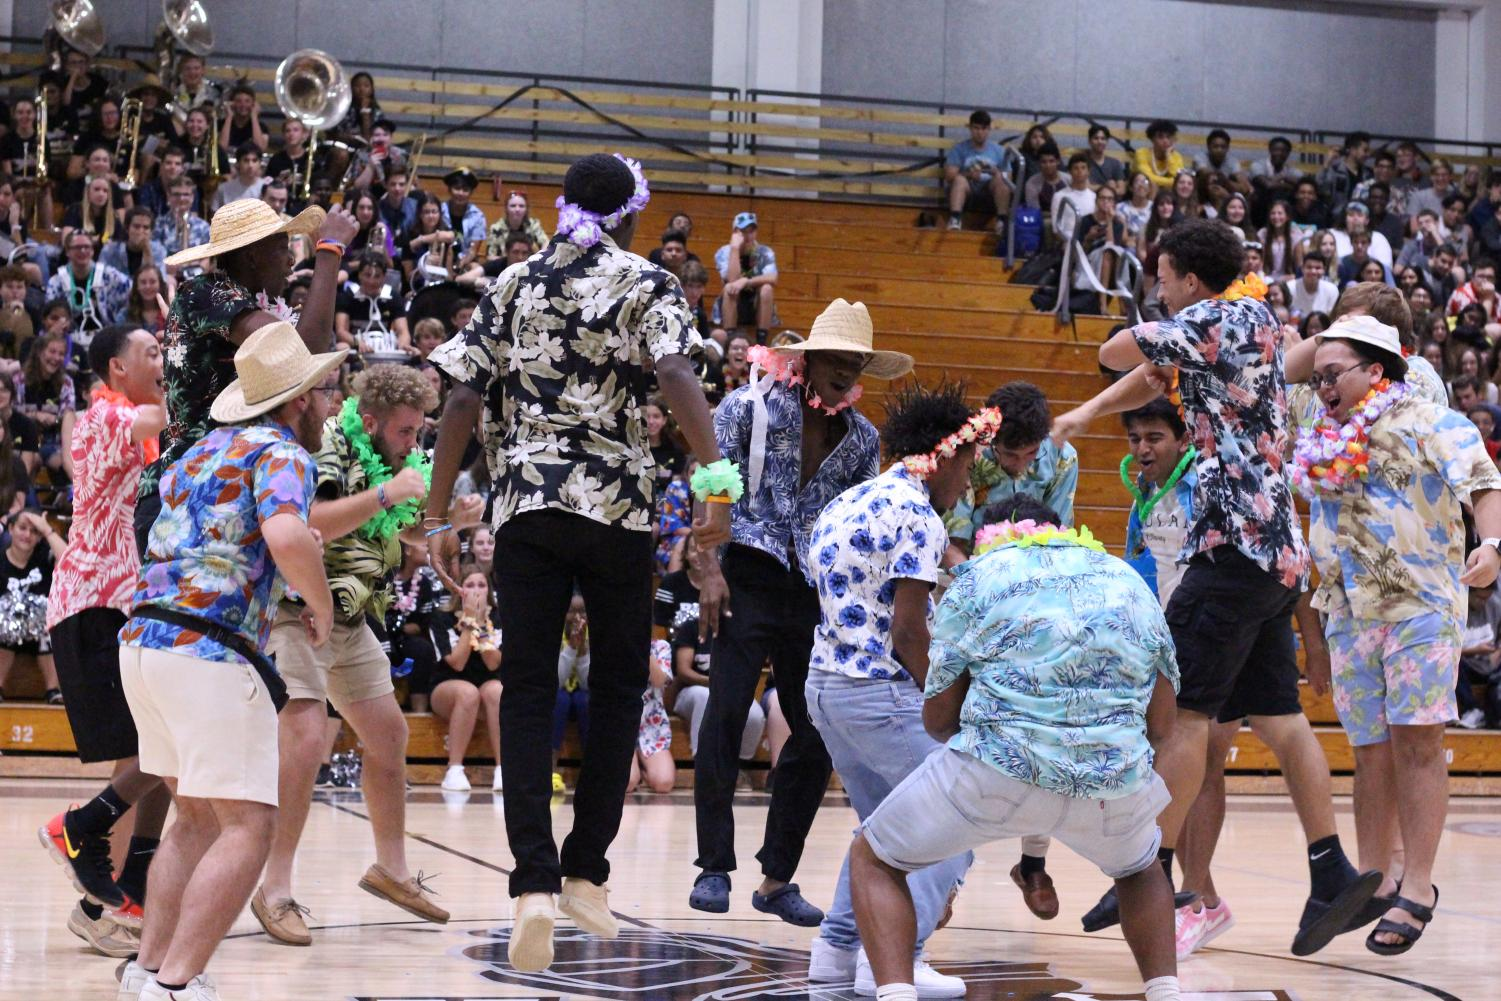 Following+the+cheerleaders%27+excitement%2C+Robinson%27s+spirit+boys+perform+their+Hawaiian+luau+dance.